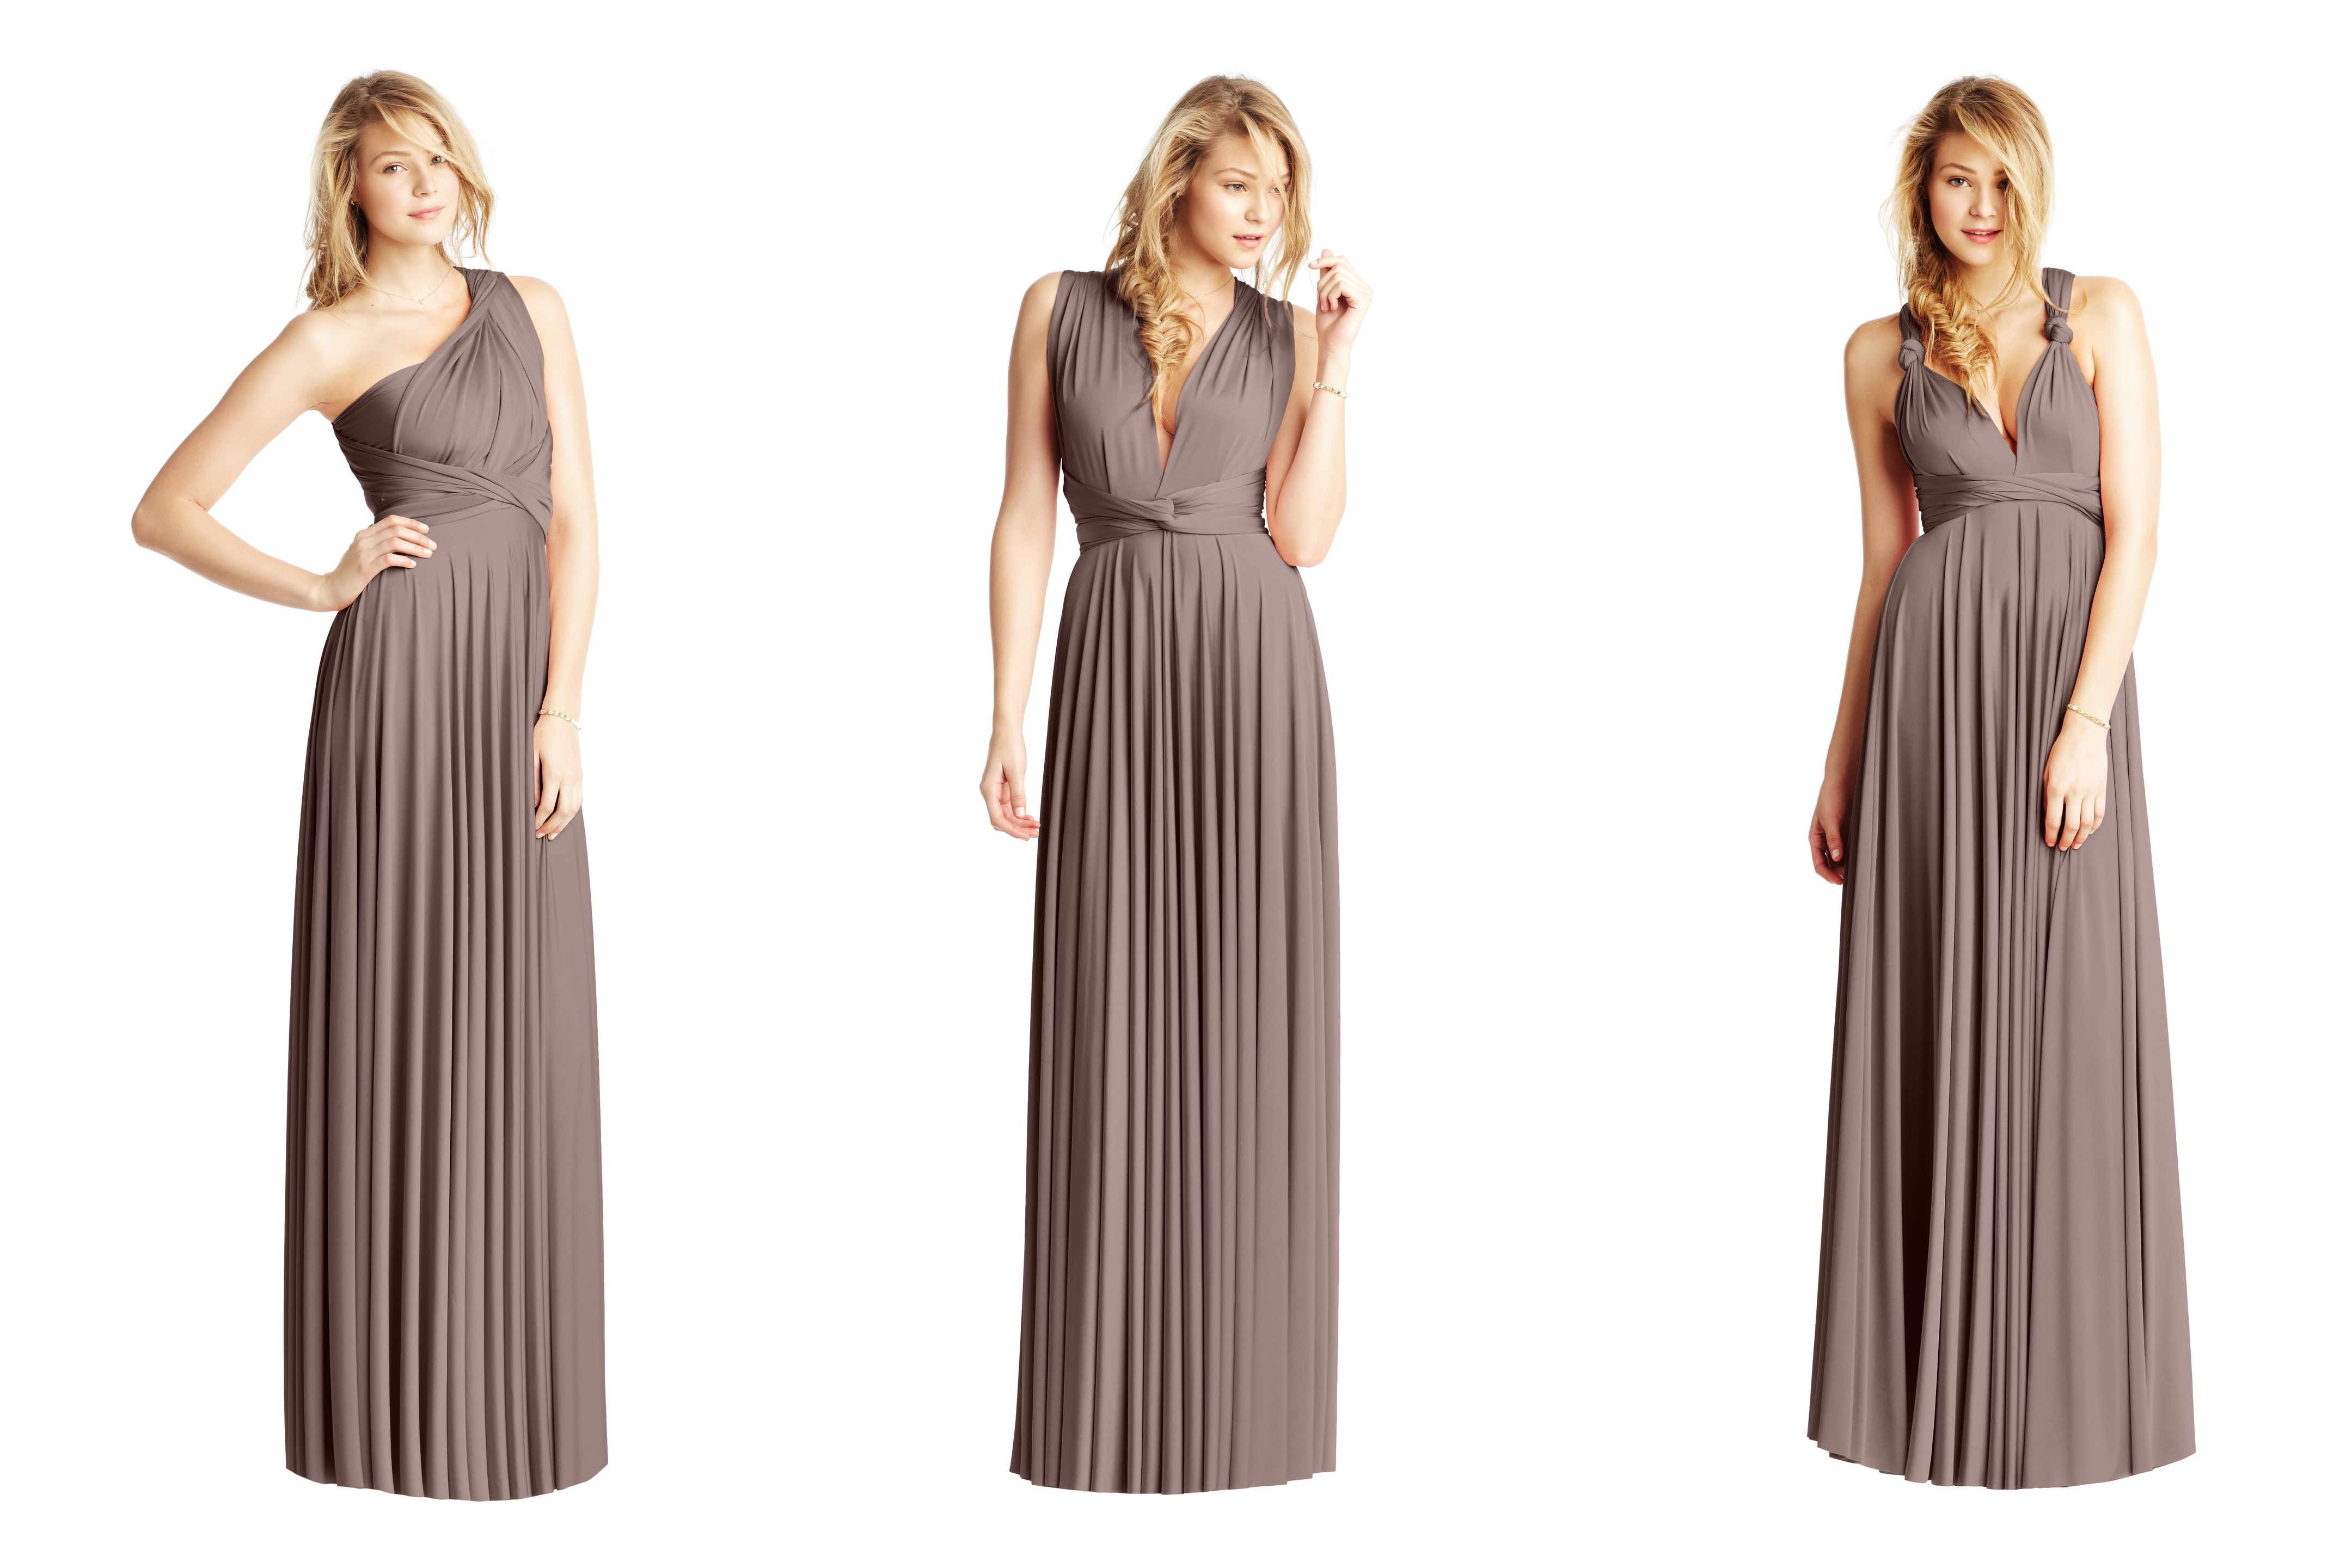 Wedding Taupe Bridesmaid Dresses taupe bridesmaid dresses mother of the bride 70